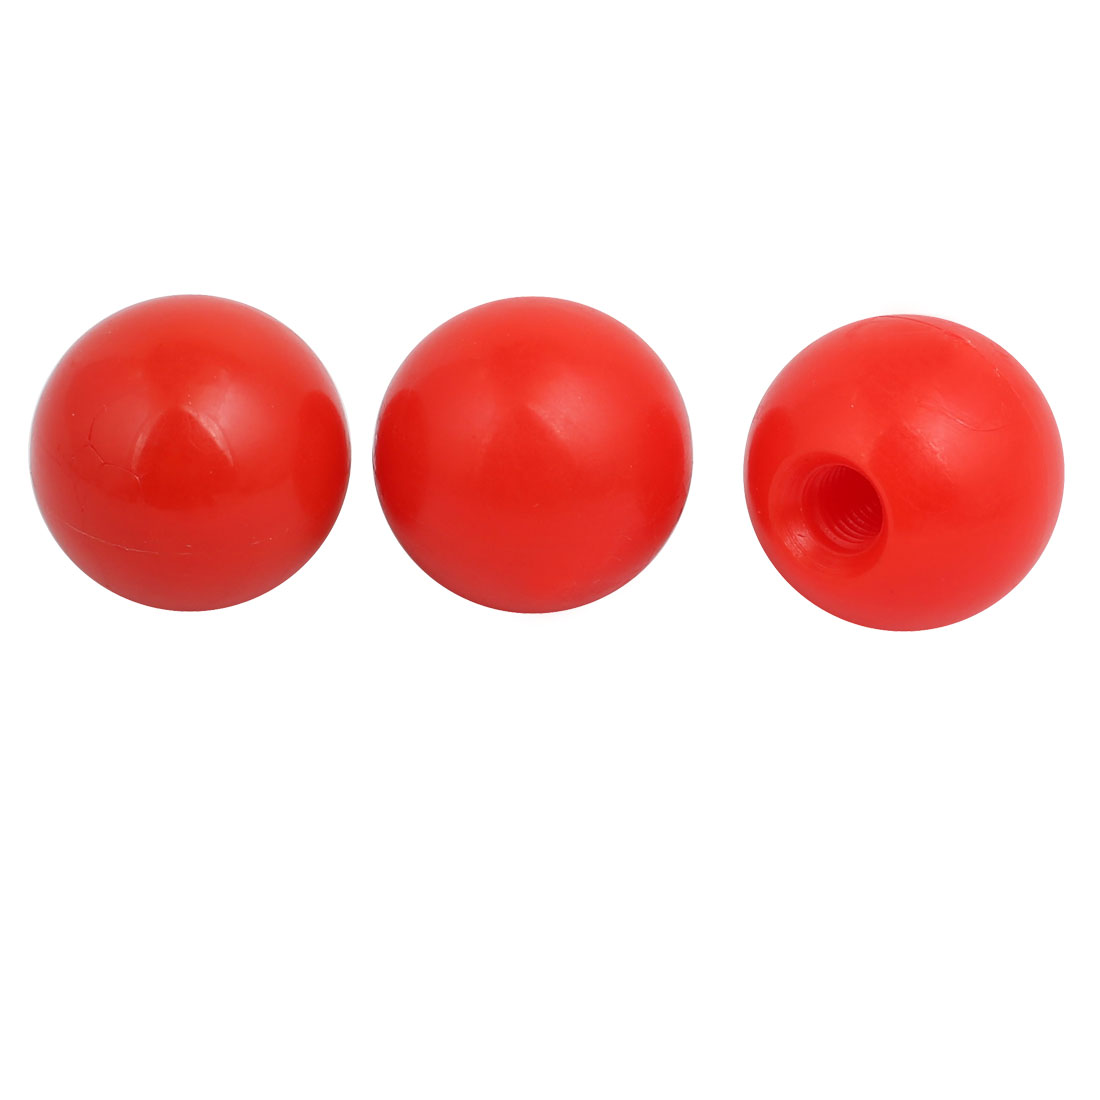 3 Pcs 8.5mm Female Threaded Machine Control Handle Ball Knob Red